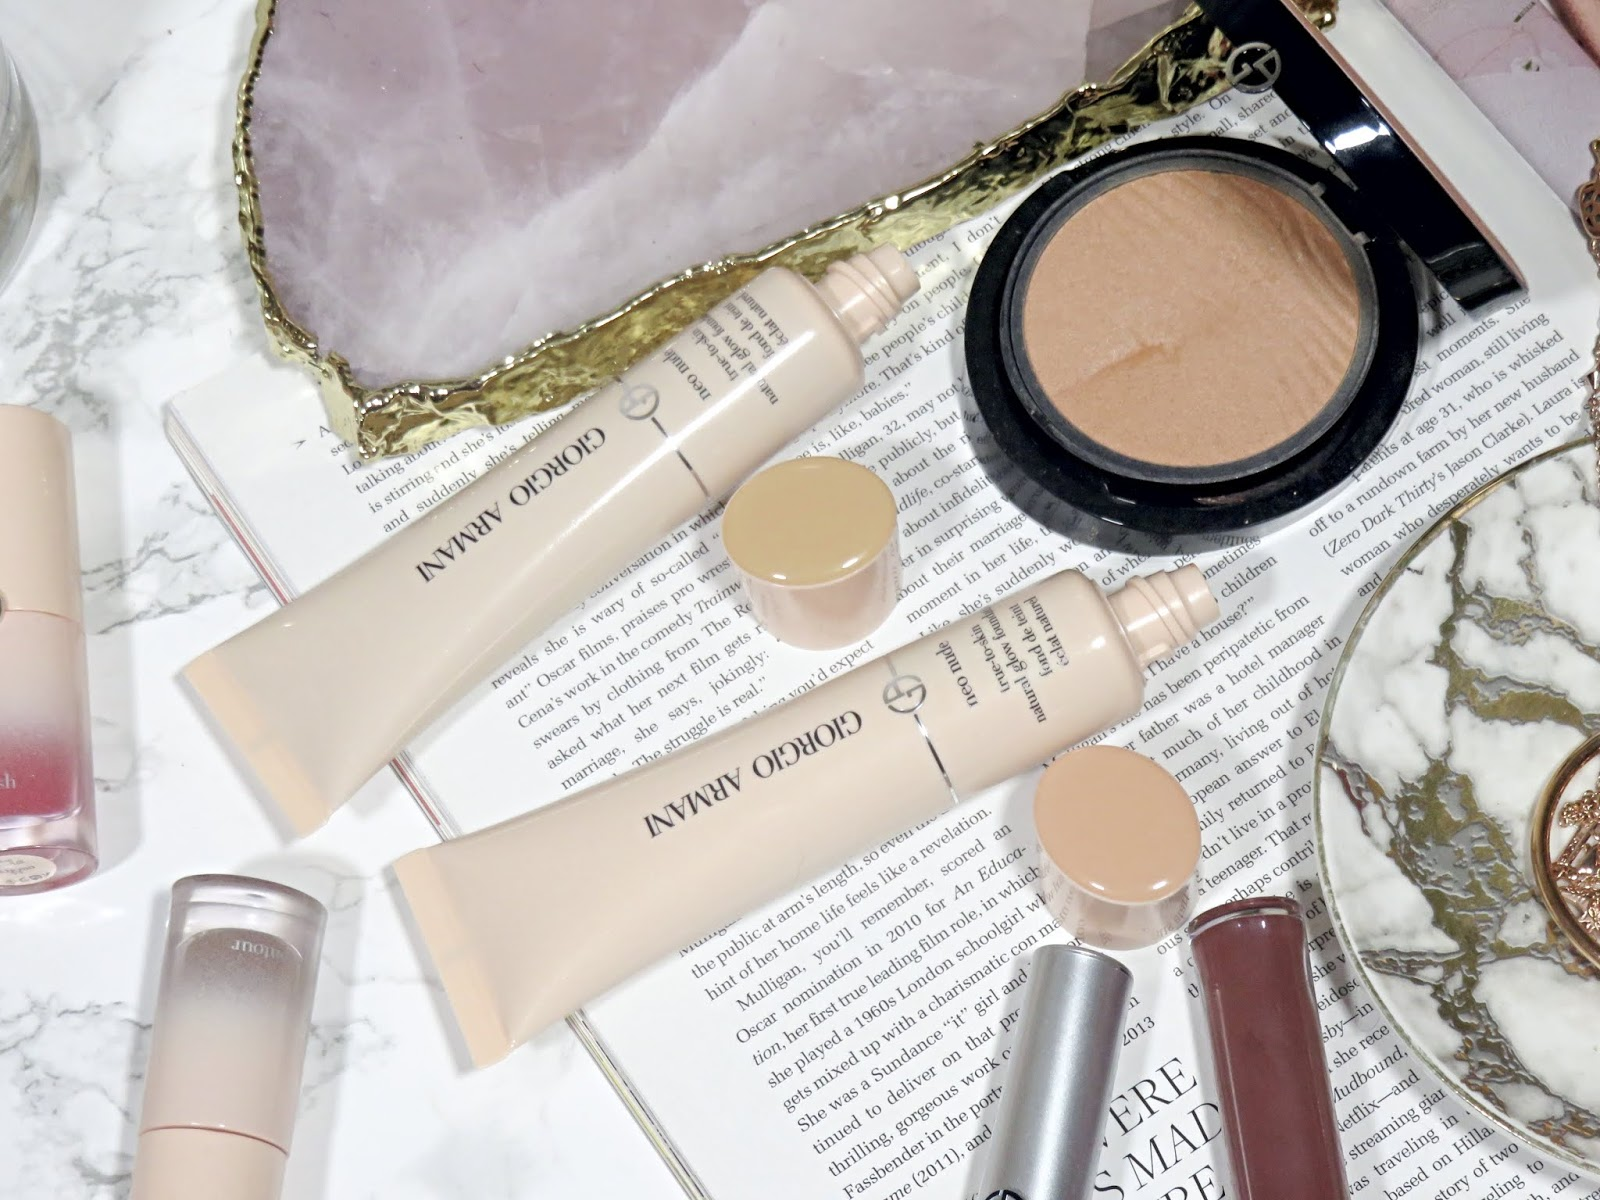 Giorgio Armani Beauty Neo Nude Foundation Review and Swatches